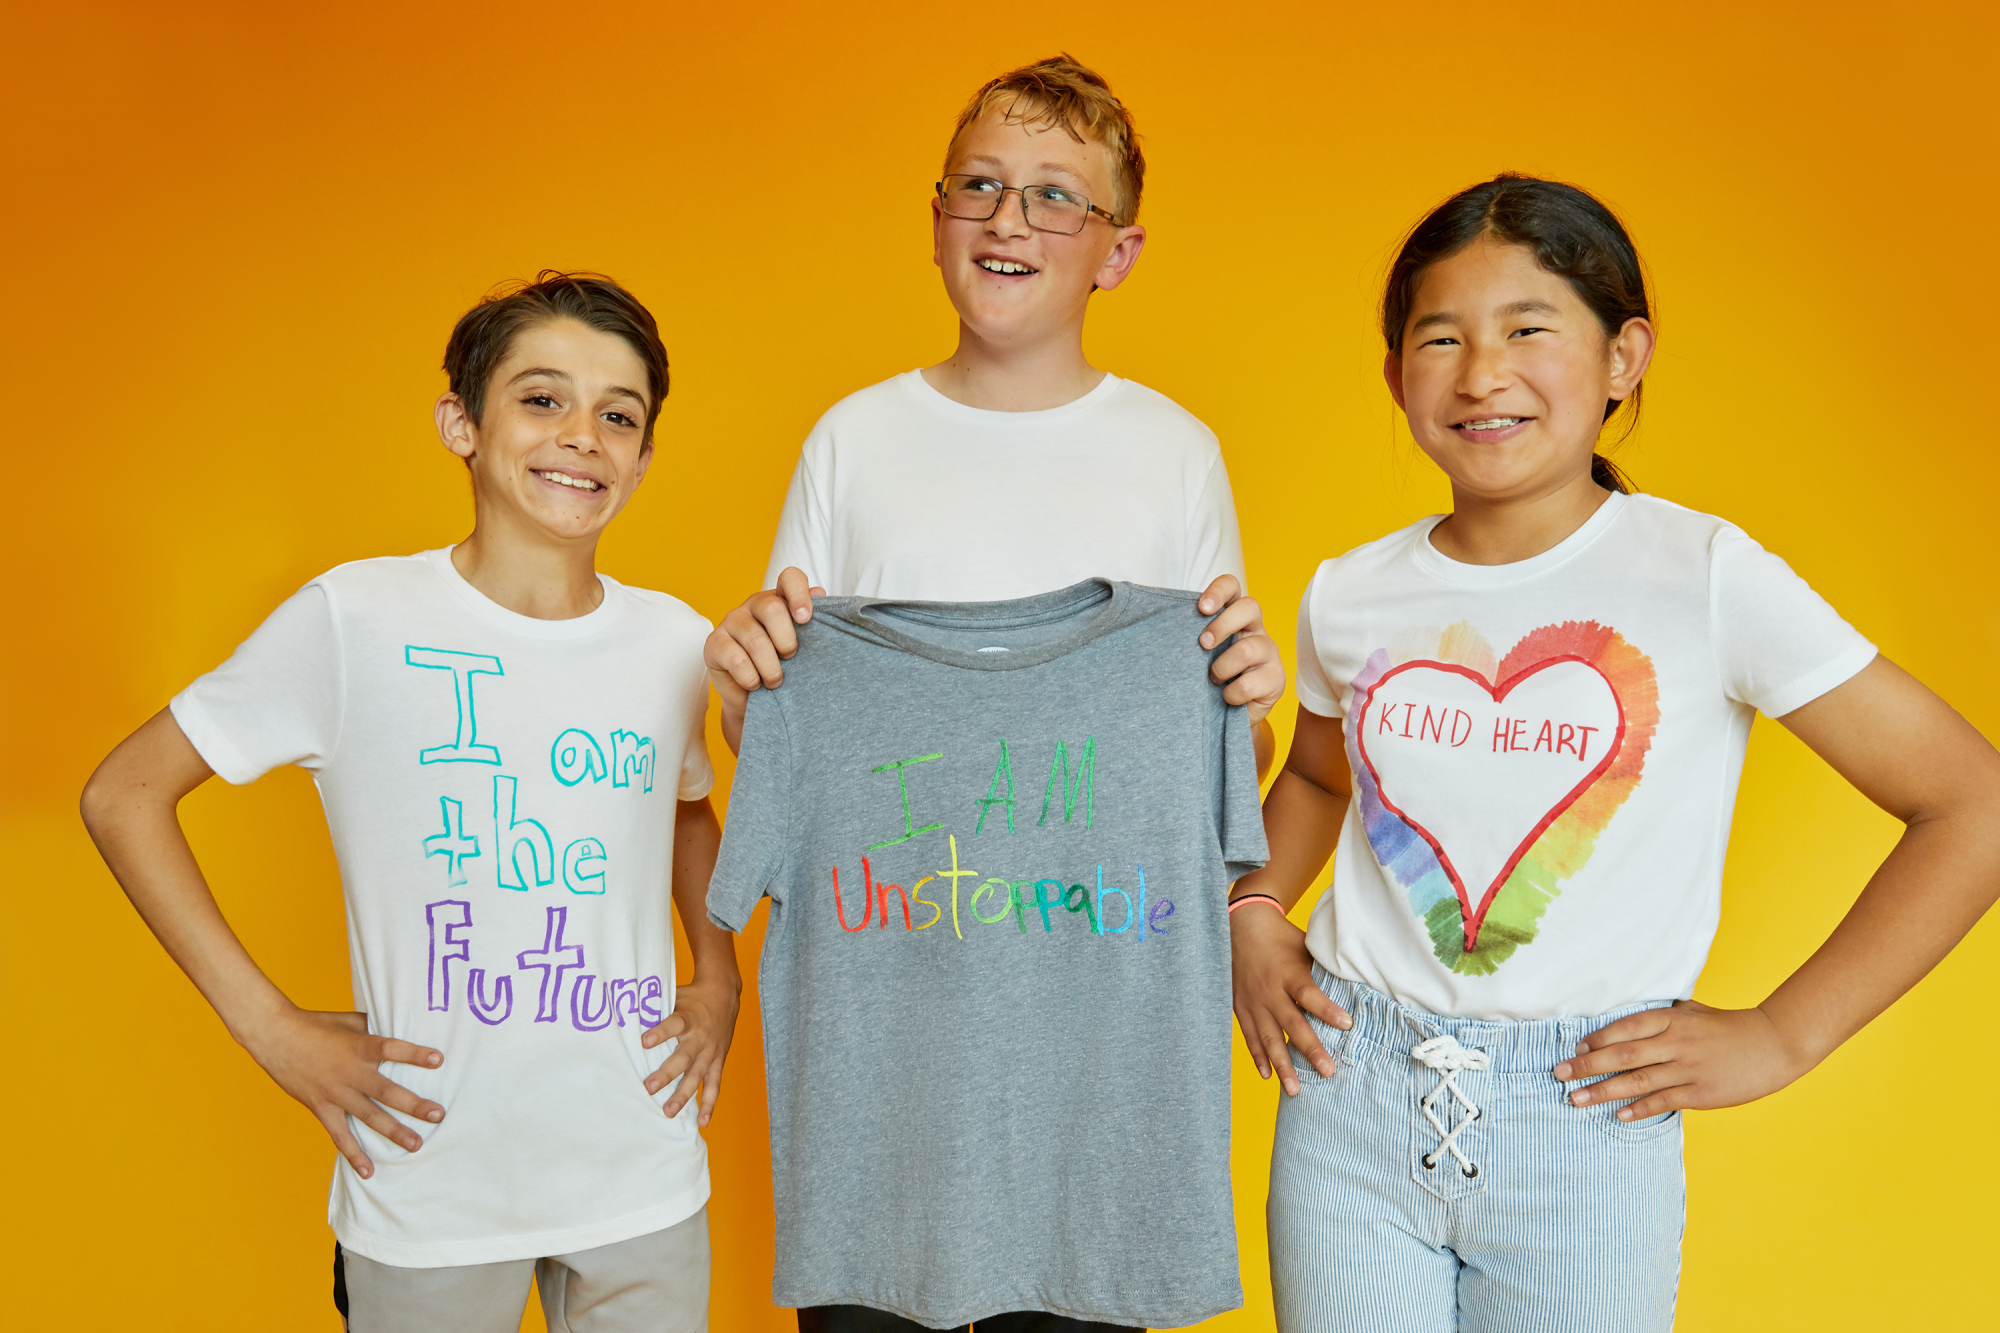 old navy kids t-shirts